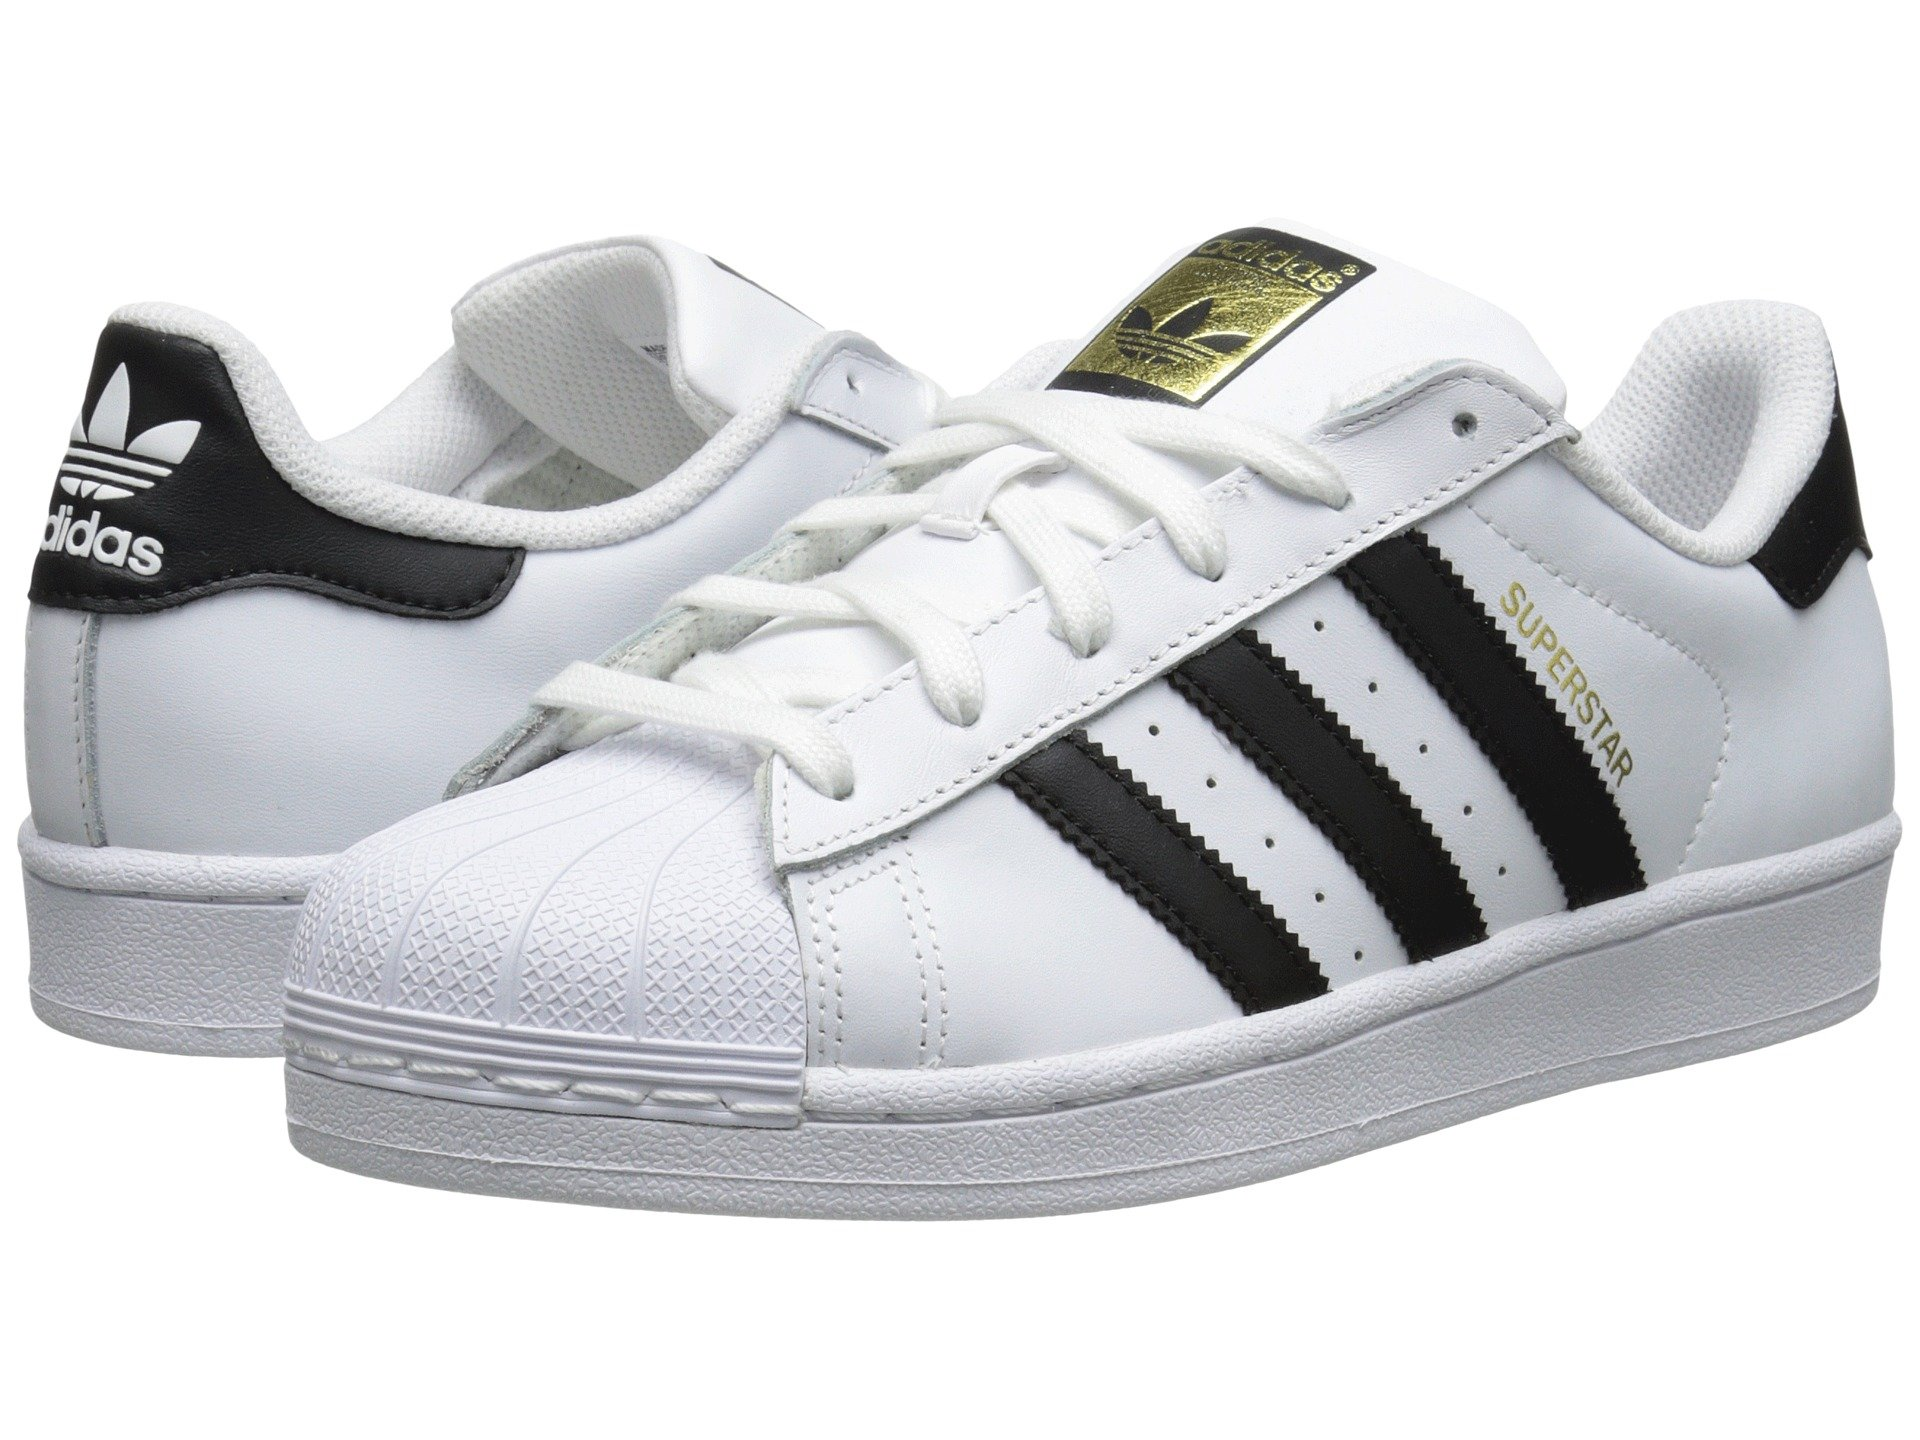 check out 01942 9631d adidas Originals Women Lifestyle Sneakers